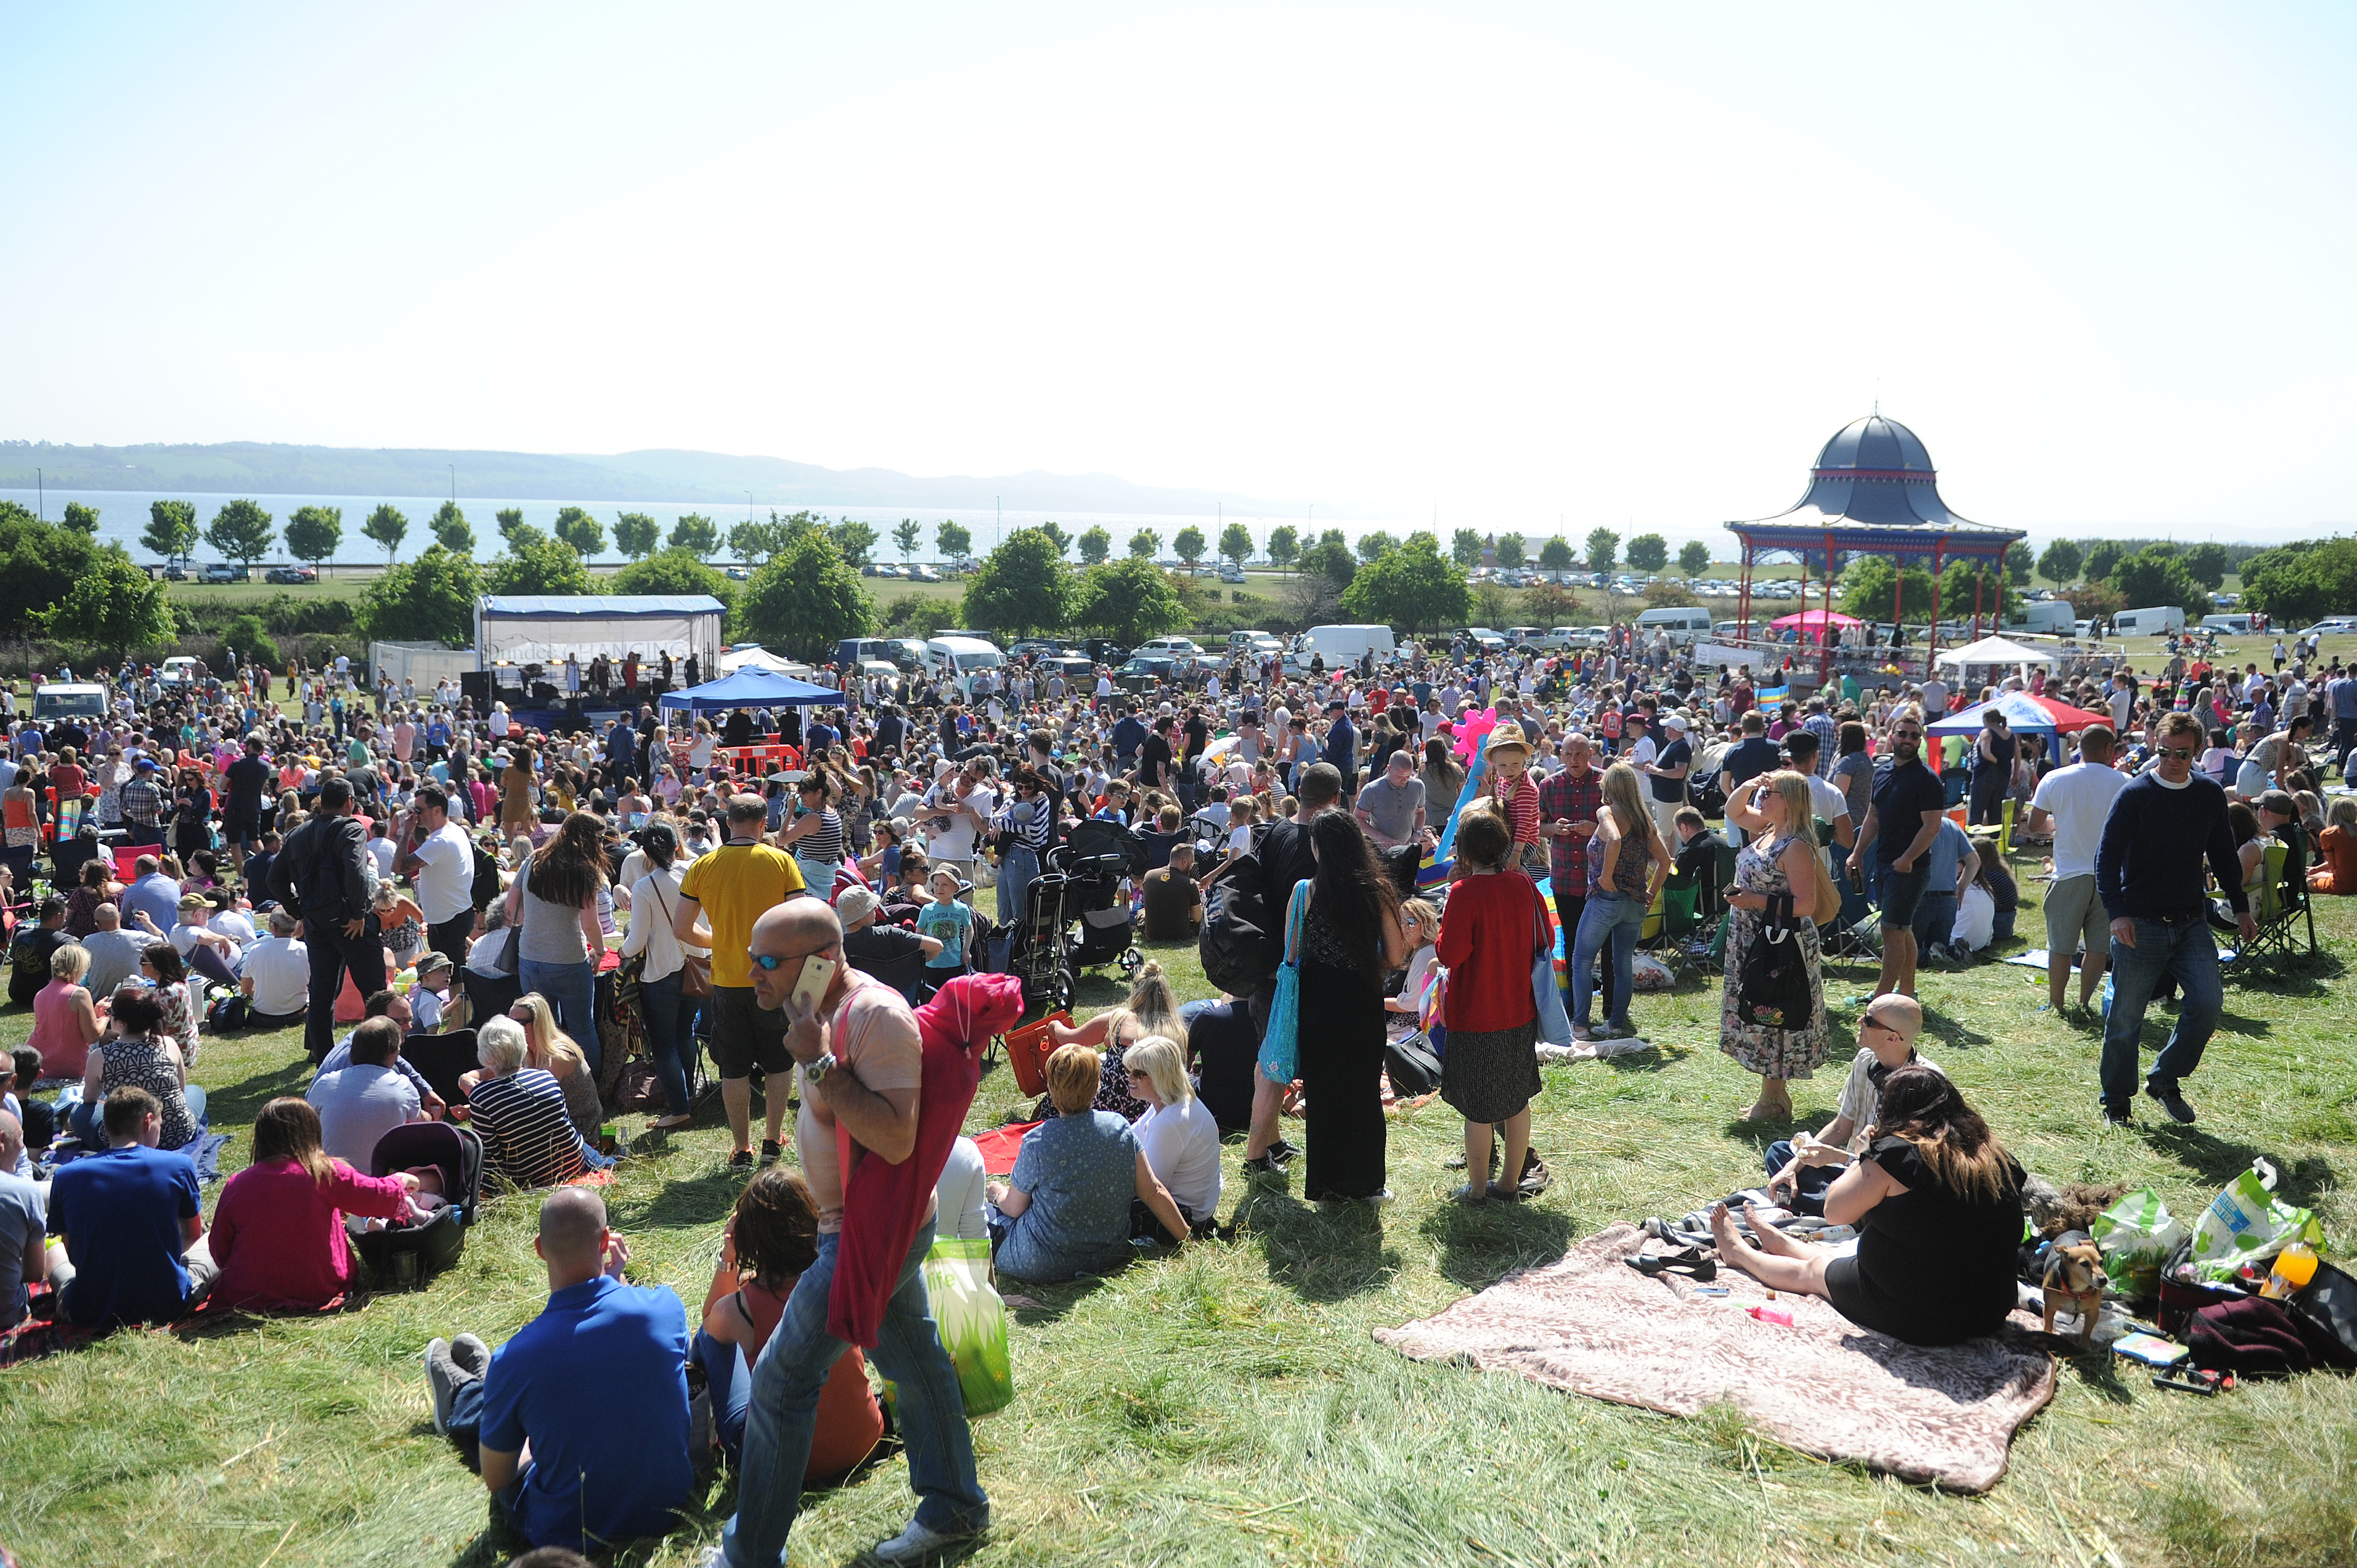 A huge crowd gathered on WestFest's big Sunday in June.